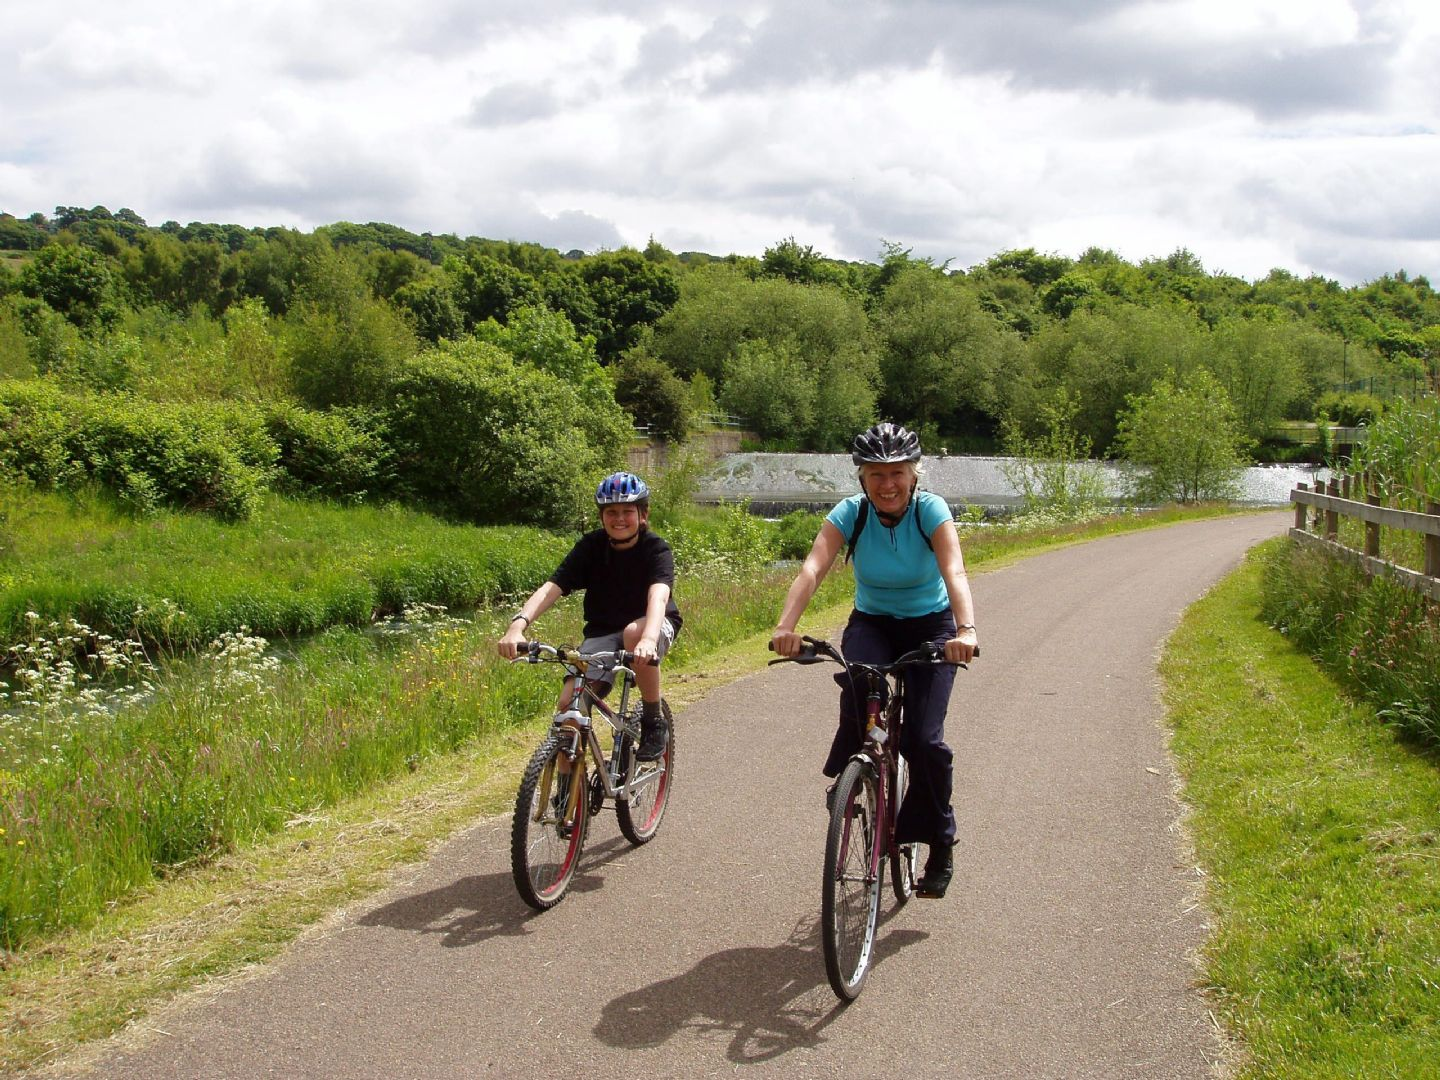 _Holiday.543.4858.jpg - UK - C2C - Coast to Coast 5 Days Cycling - Self-Guided Family Cycling Holiday - Family Cycling